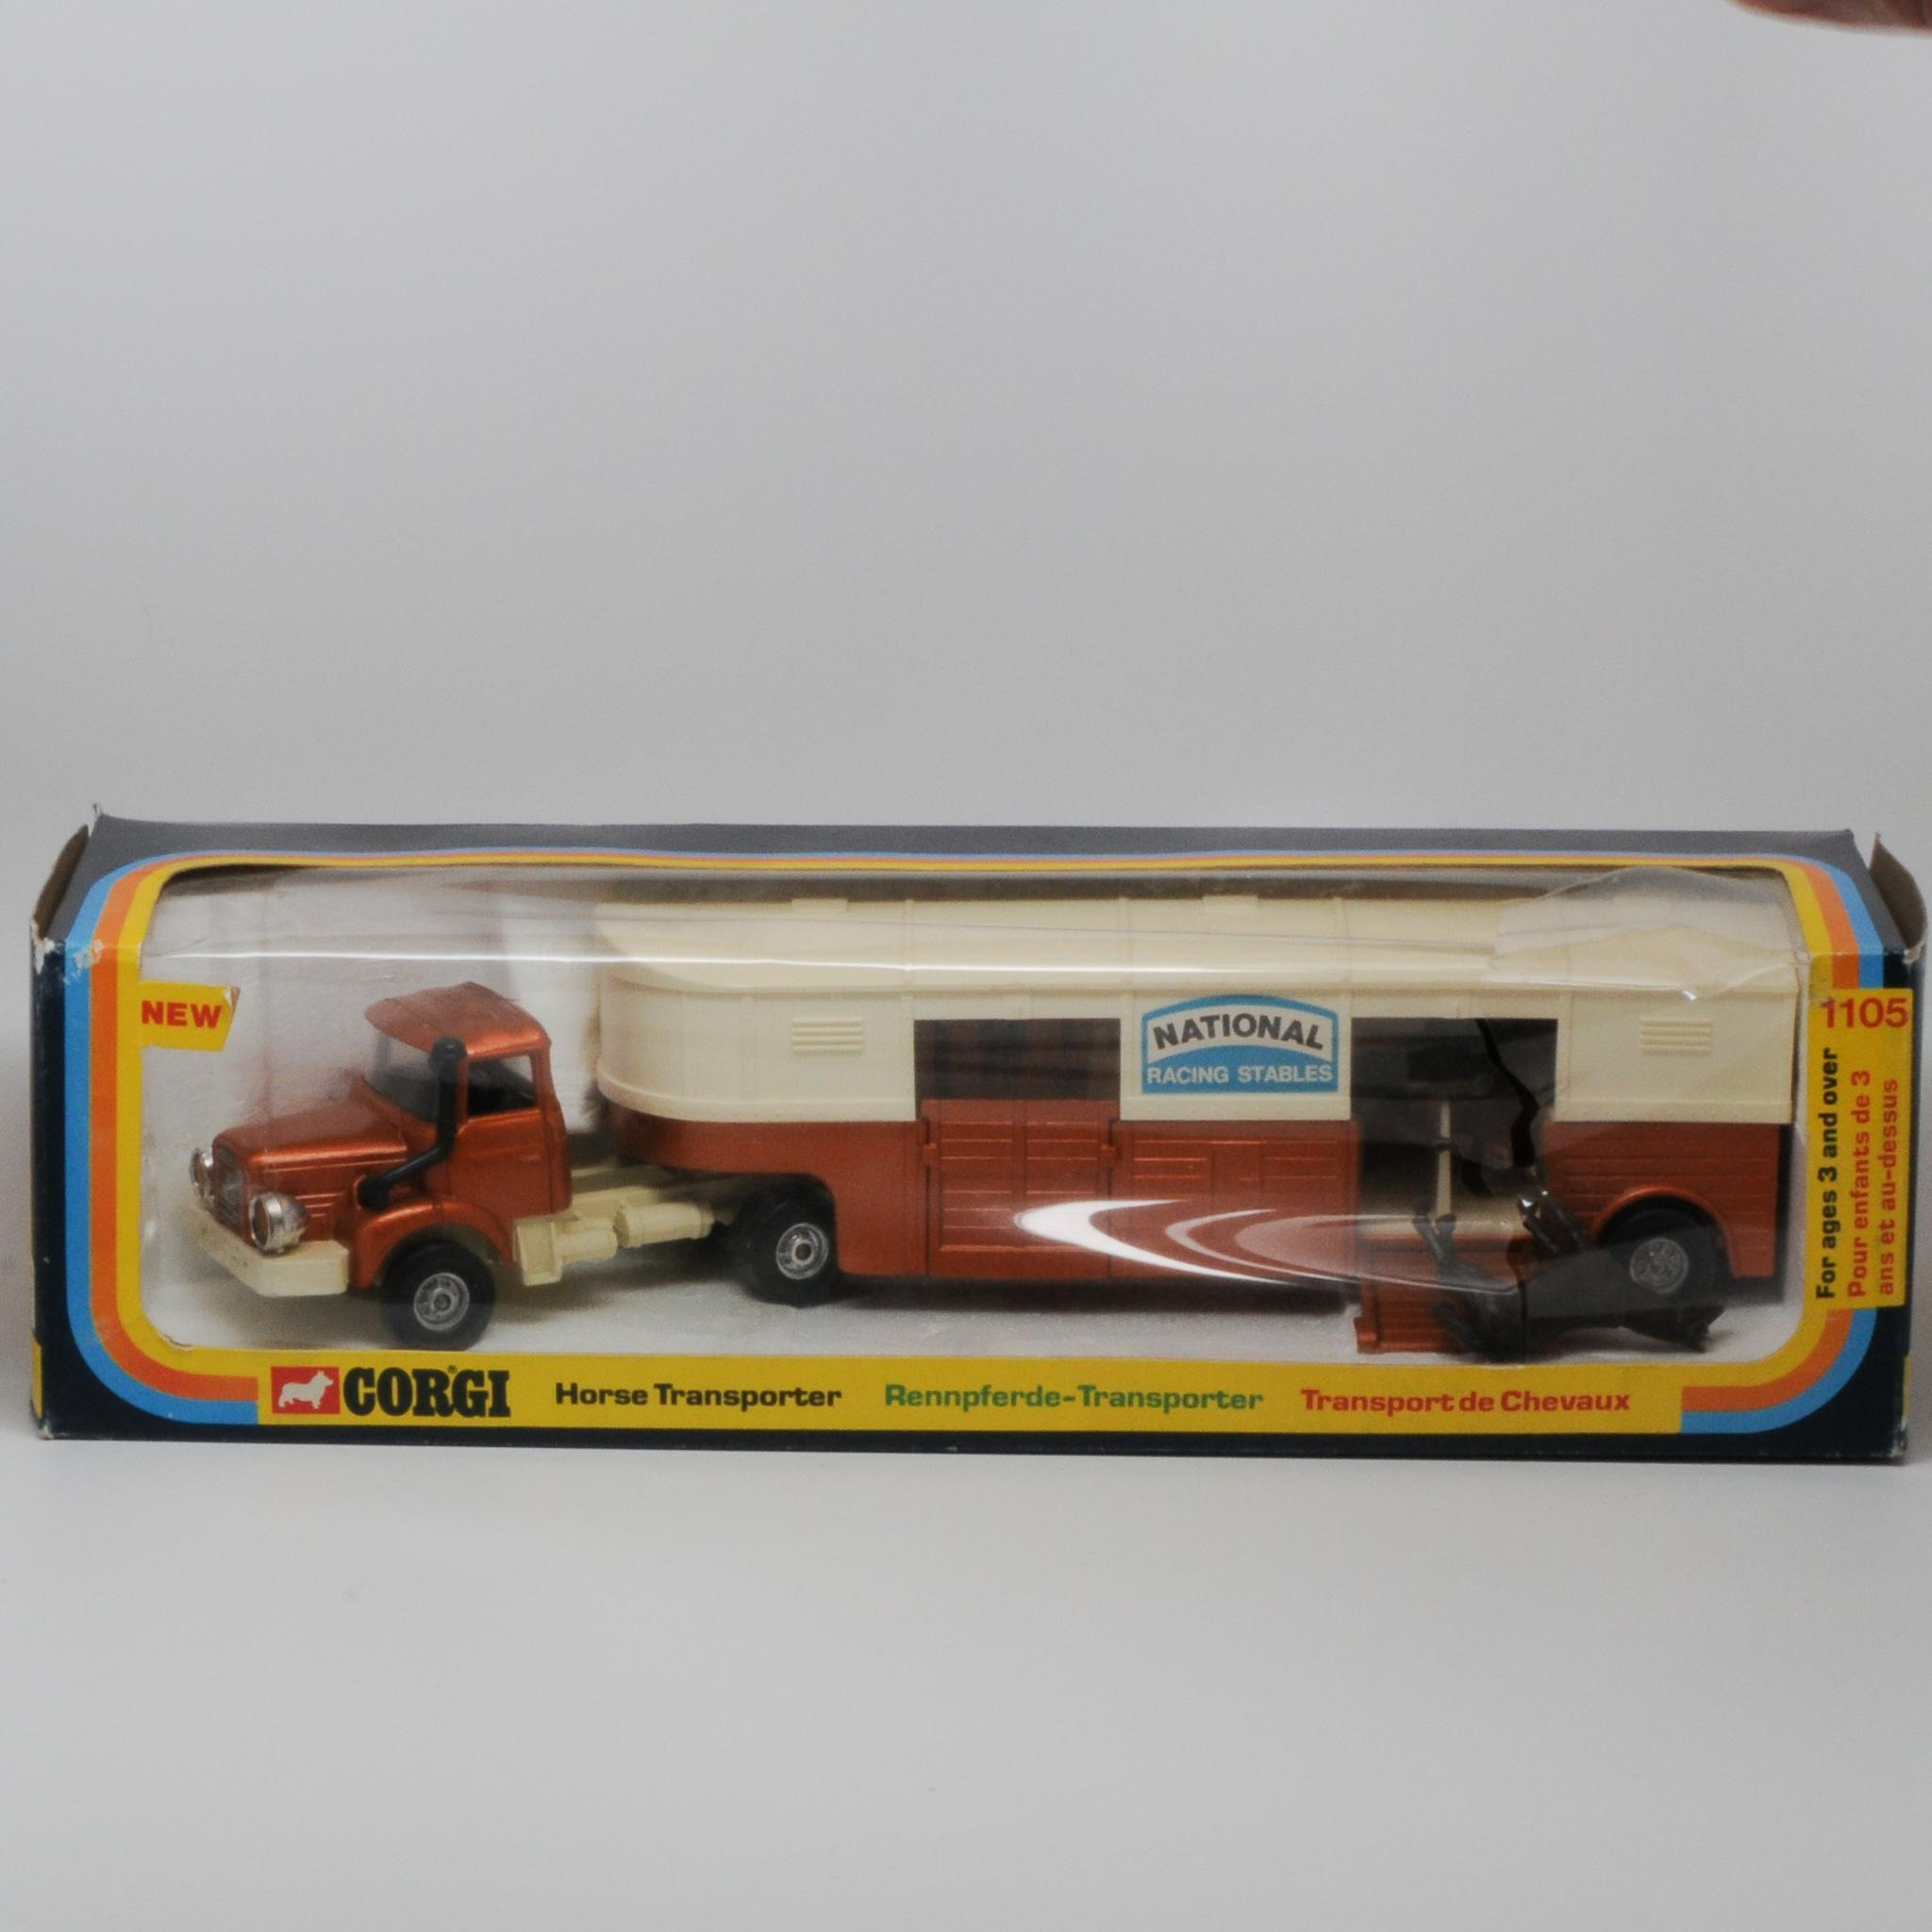 Corgi 1105 Berliet Horse Transporter Mint in Box